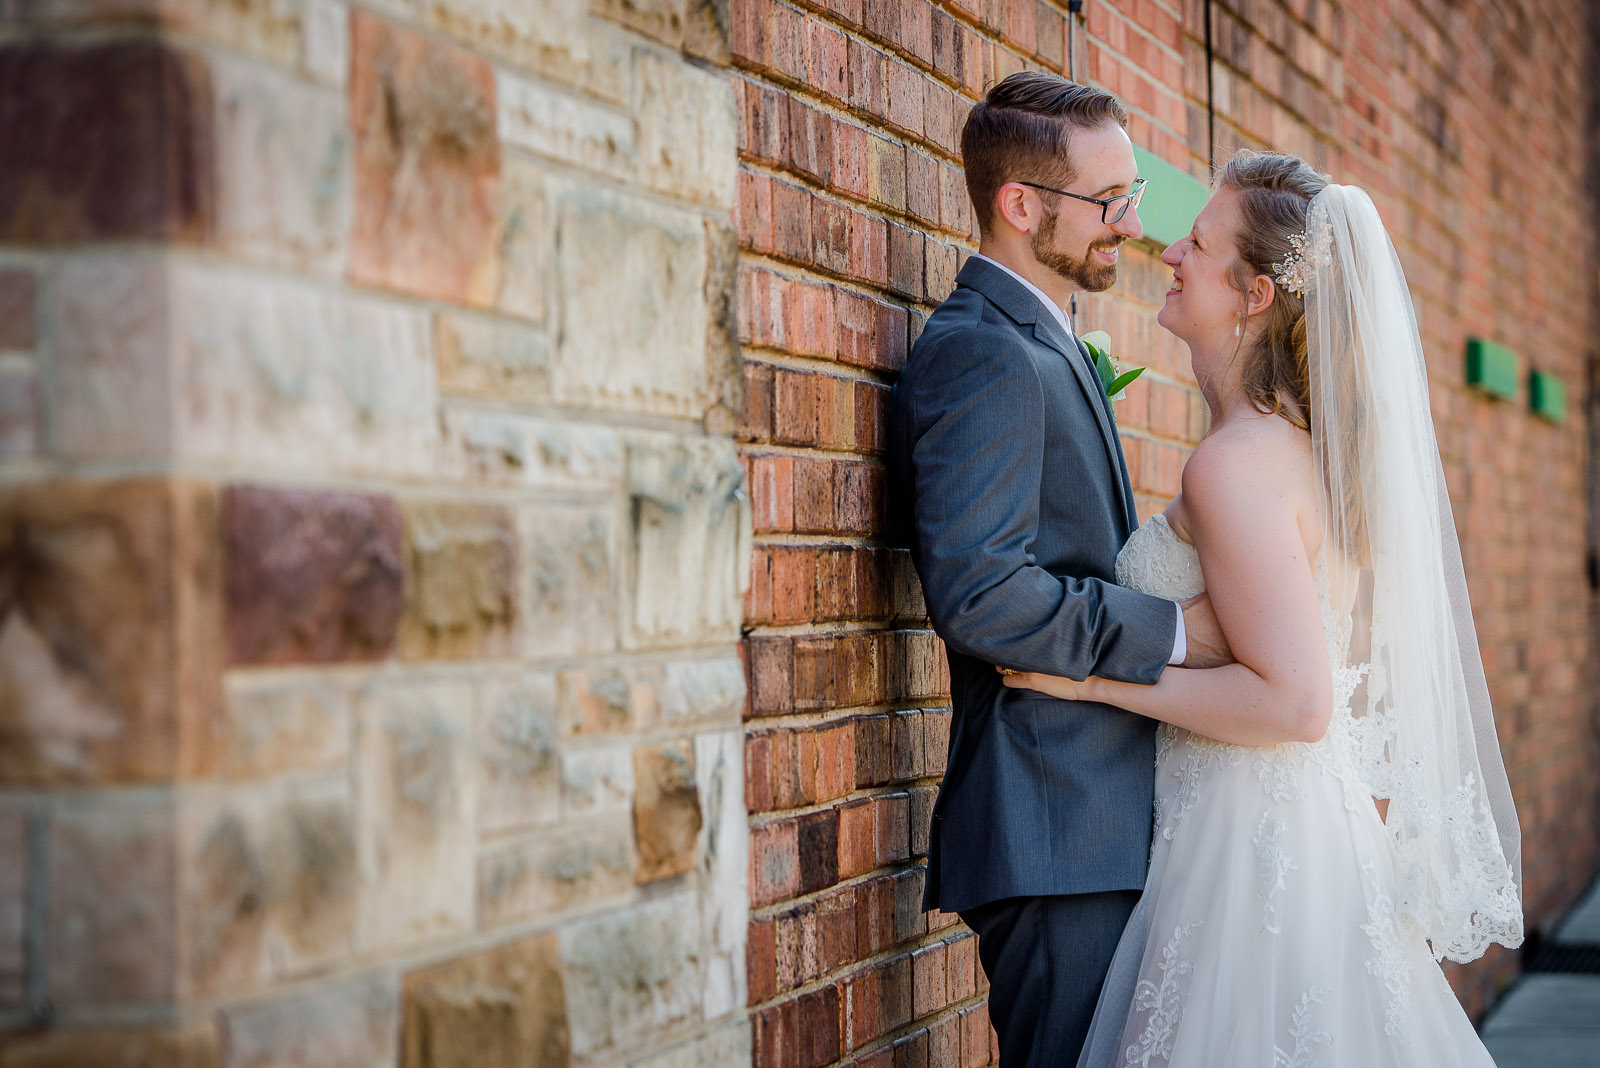 Eric_and_Christy_Photography_Blog_2018_Portraits-16